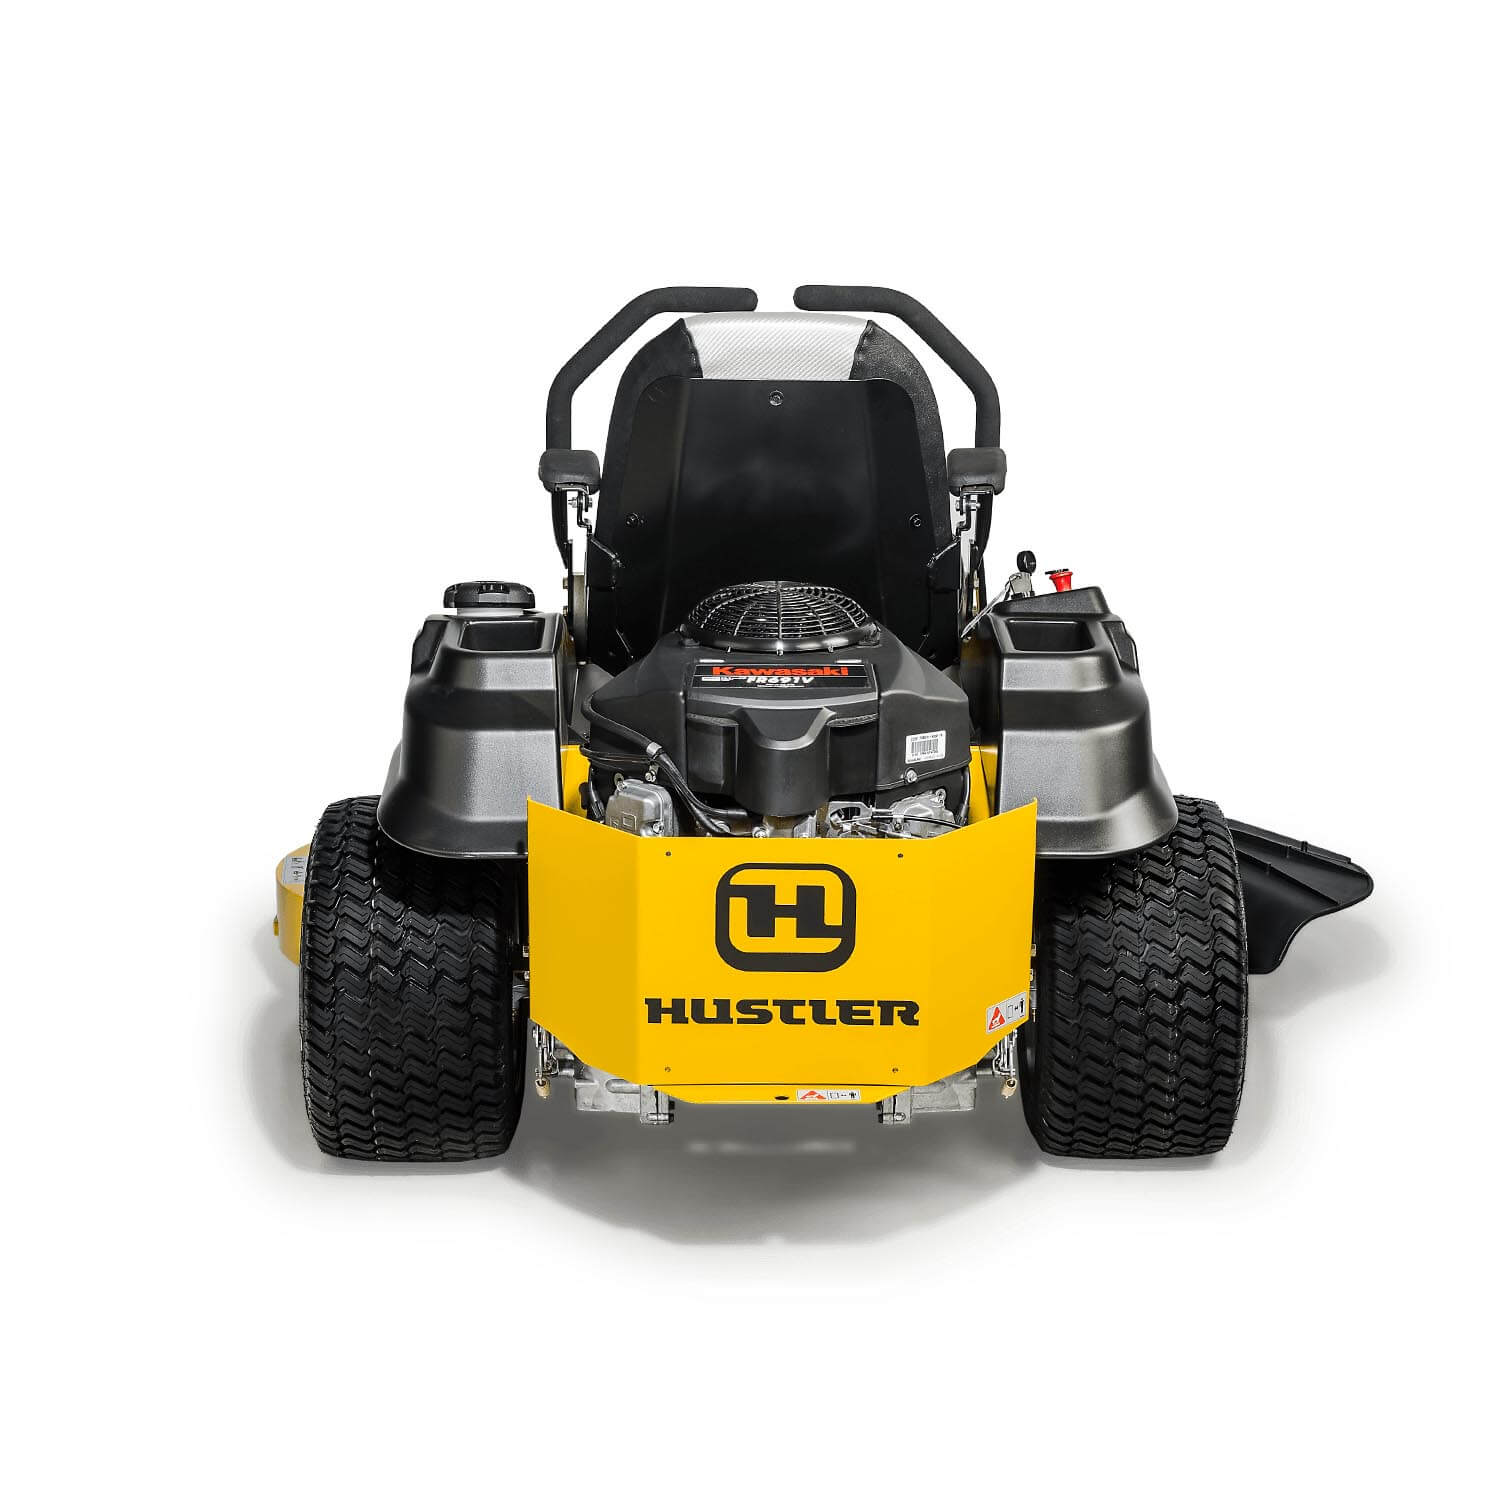 Image of the rear of a yellow Hustler mower